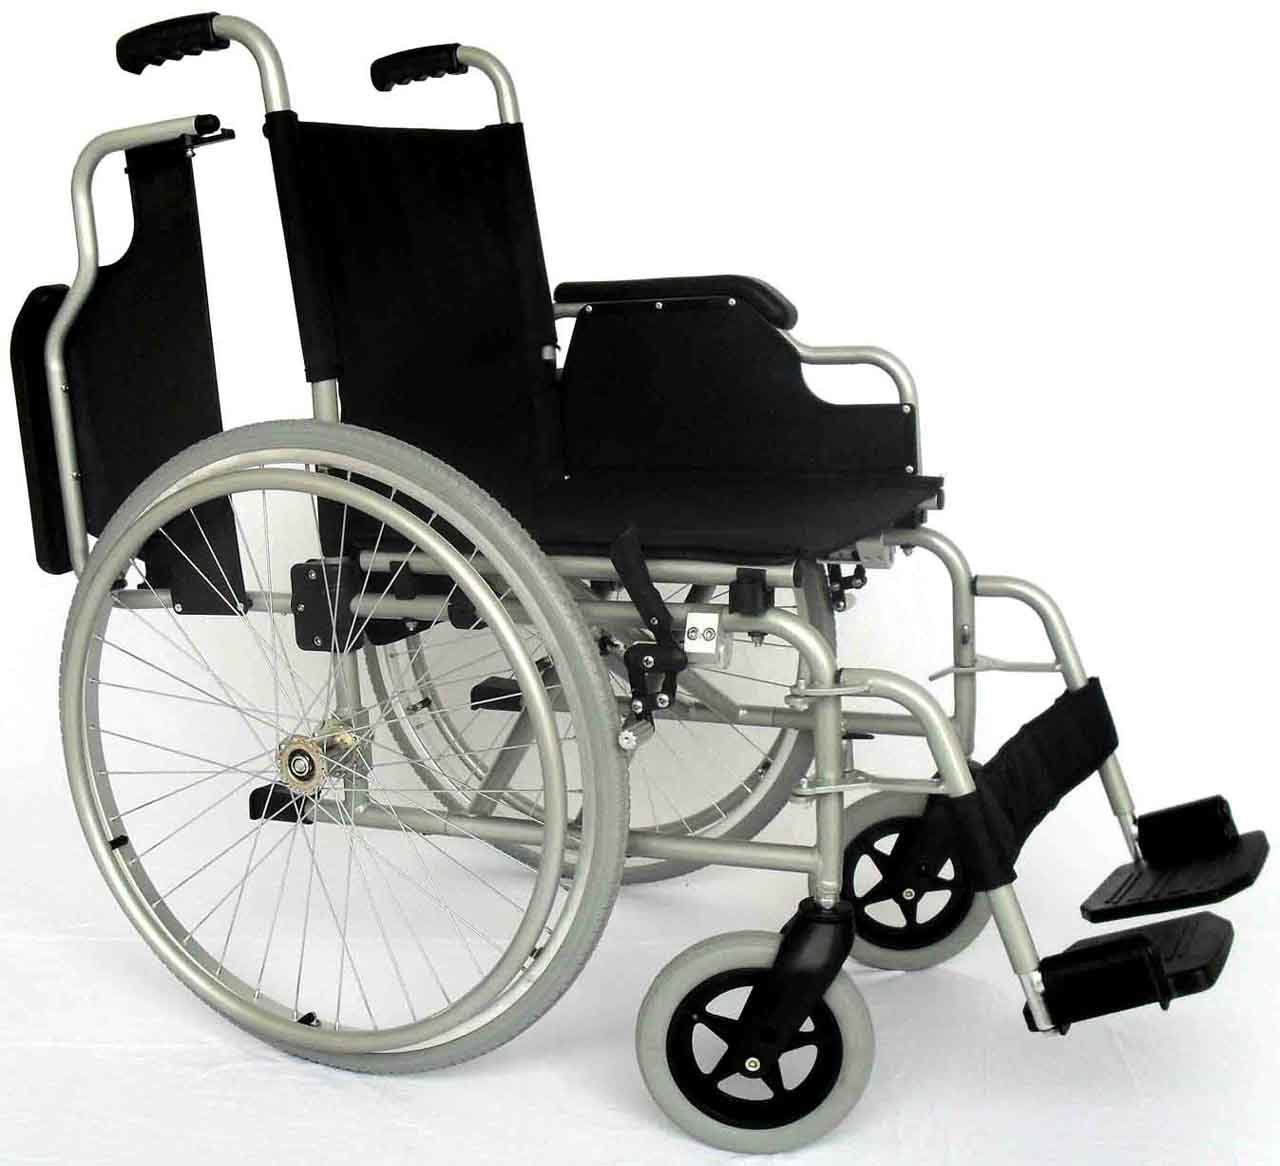 of electric power wheelchairs happy and free sells rigid chairs